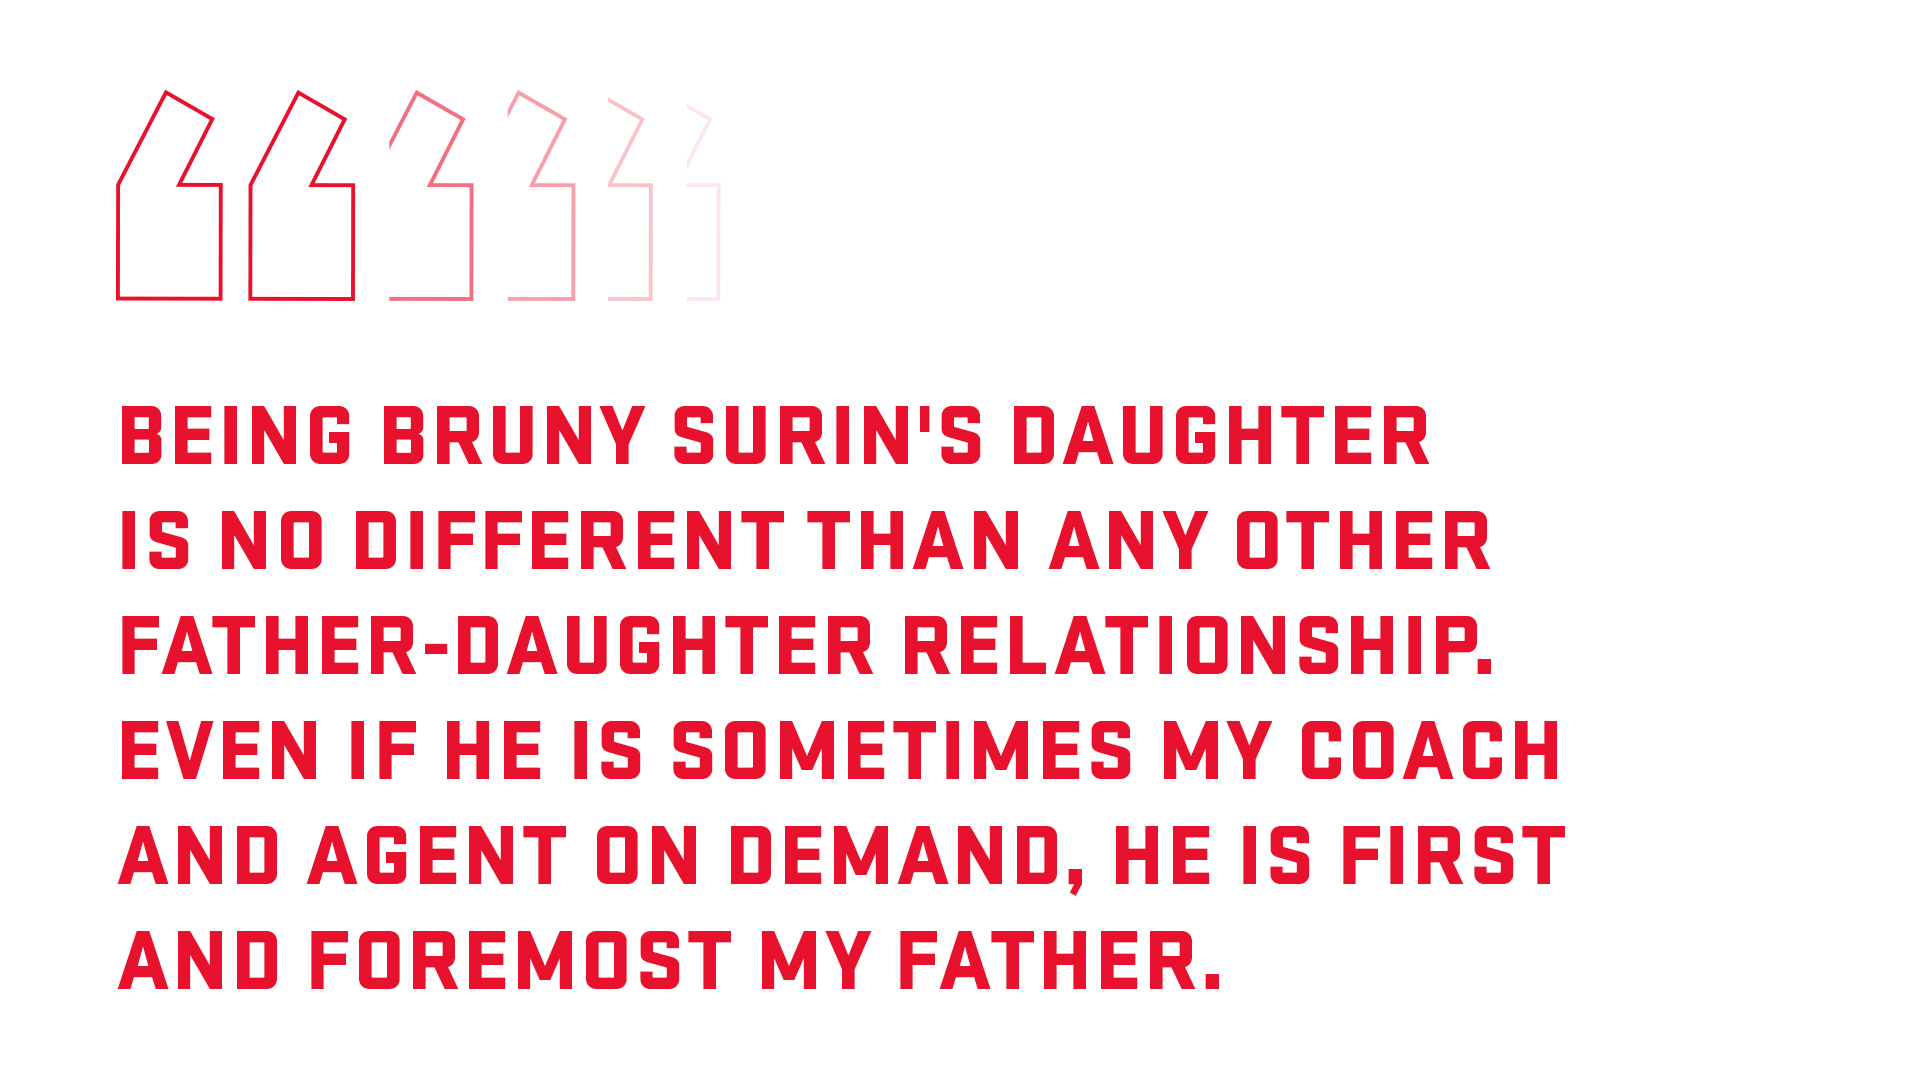 Graphic with a quote: Being Bruny Surin's daughter is no different than any father-daughter relationship. Even though he is sometimes a coach and an agent on-demand, above all he's my father.